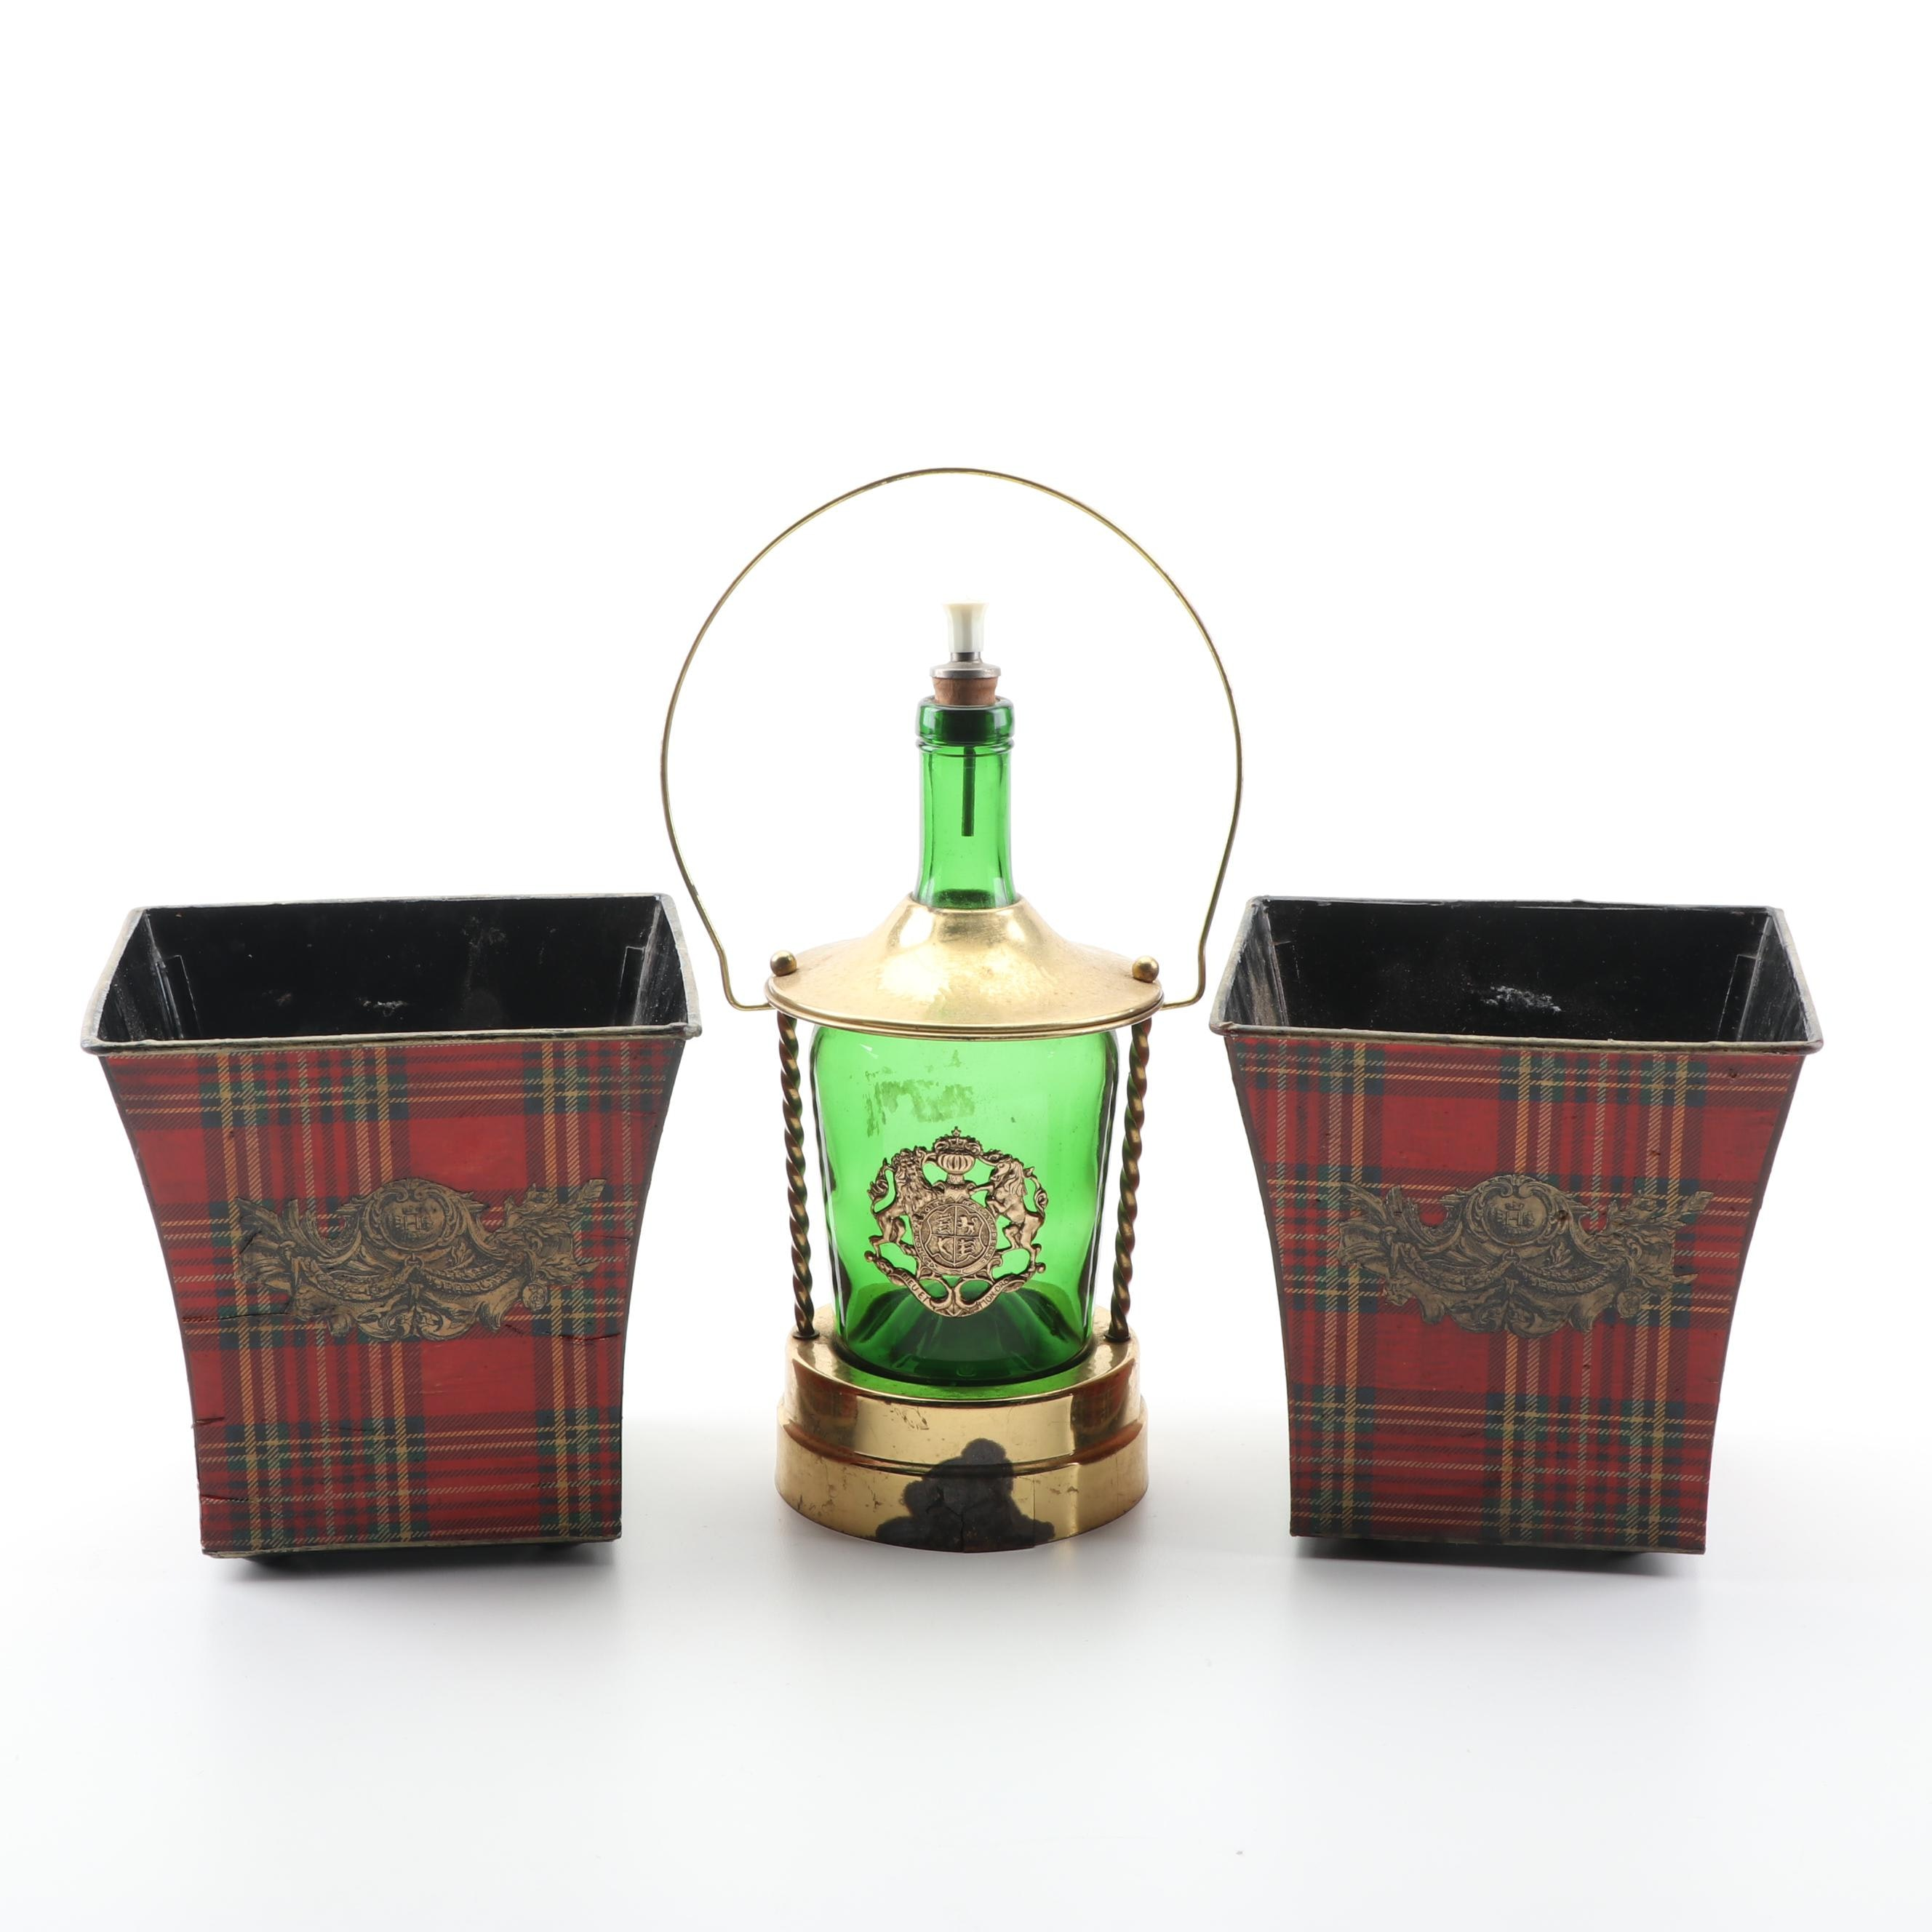 Red Plaid Decoupage Planters and Green Glass Decanter in Brass Stand